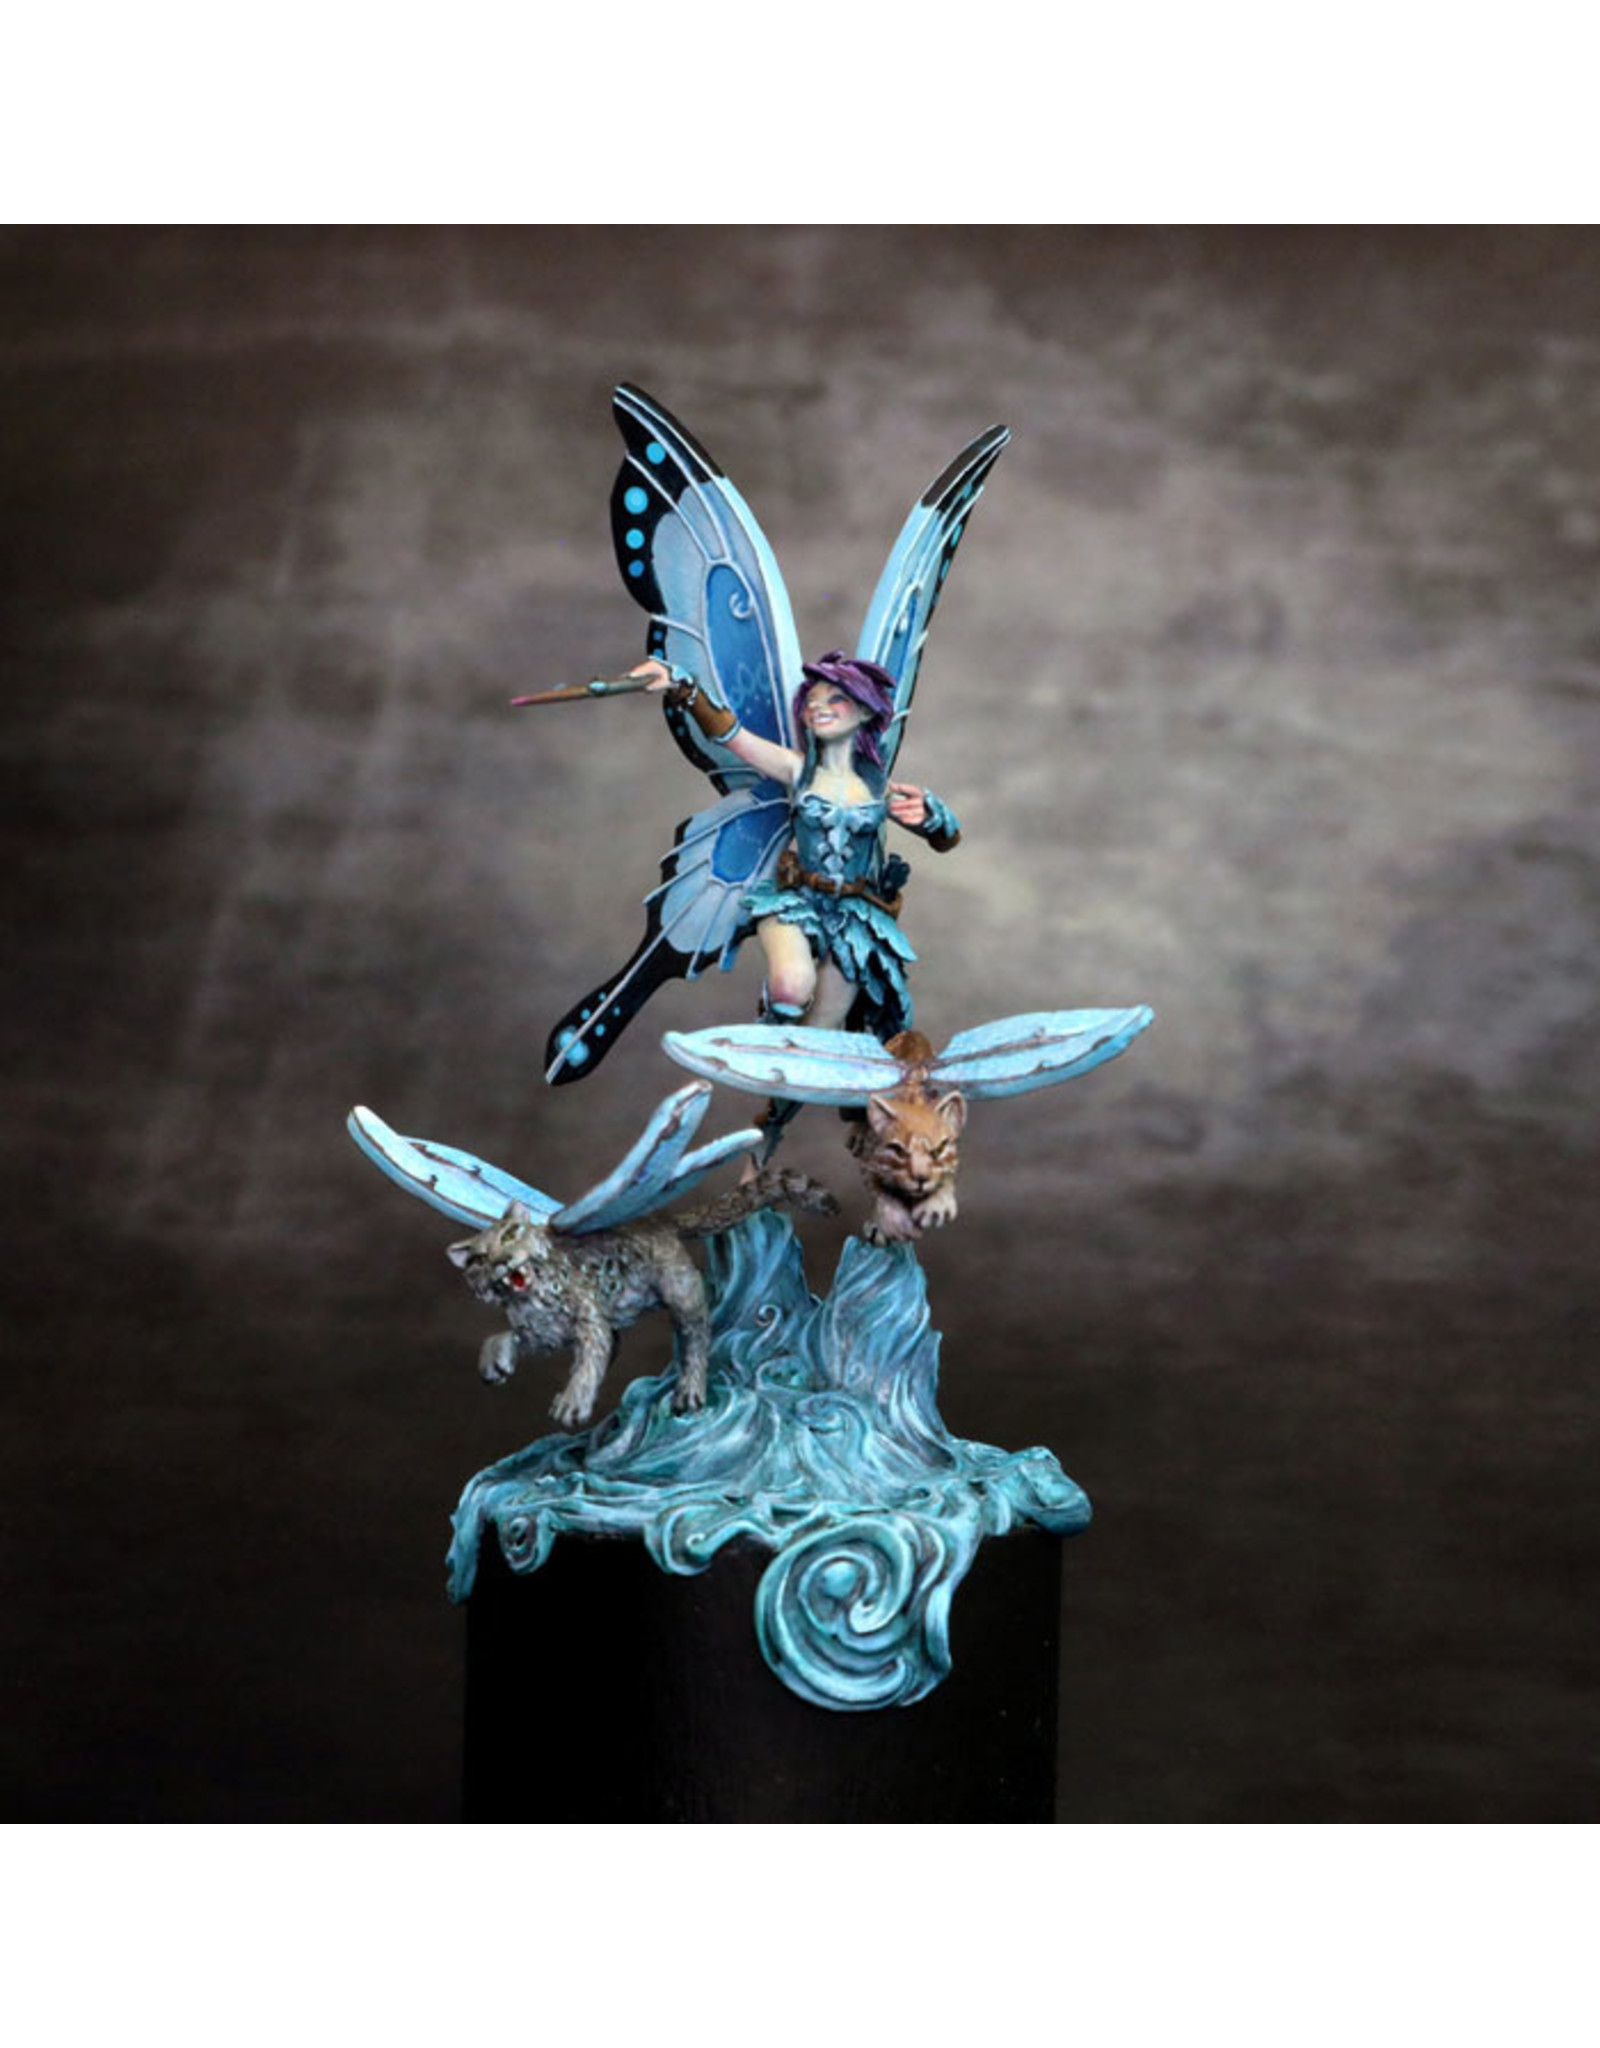 Dark Sword Minis Visions in Fantasy: Ali the Fairy  with Winged Cats